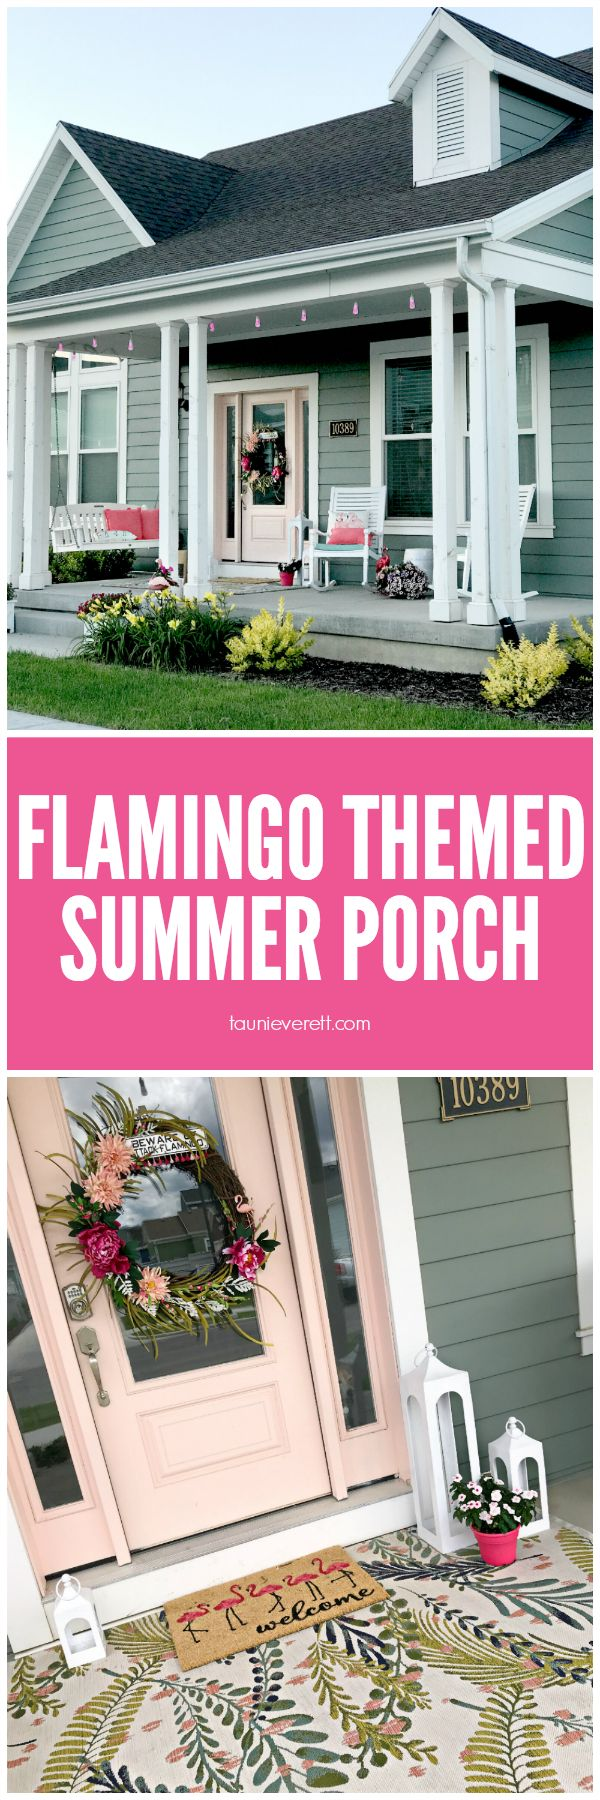 Flamingo Themed Summer Porch Ideas and Sources #flamingo #summer #porch #summerp...